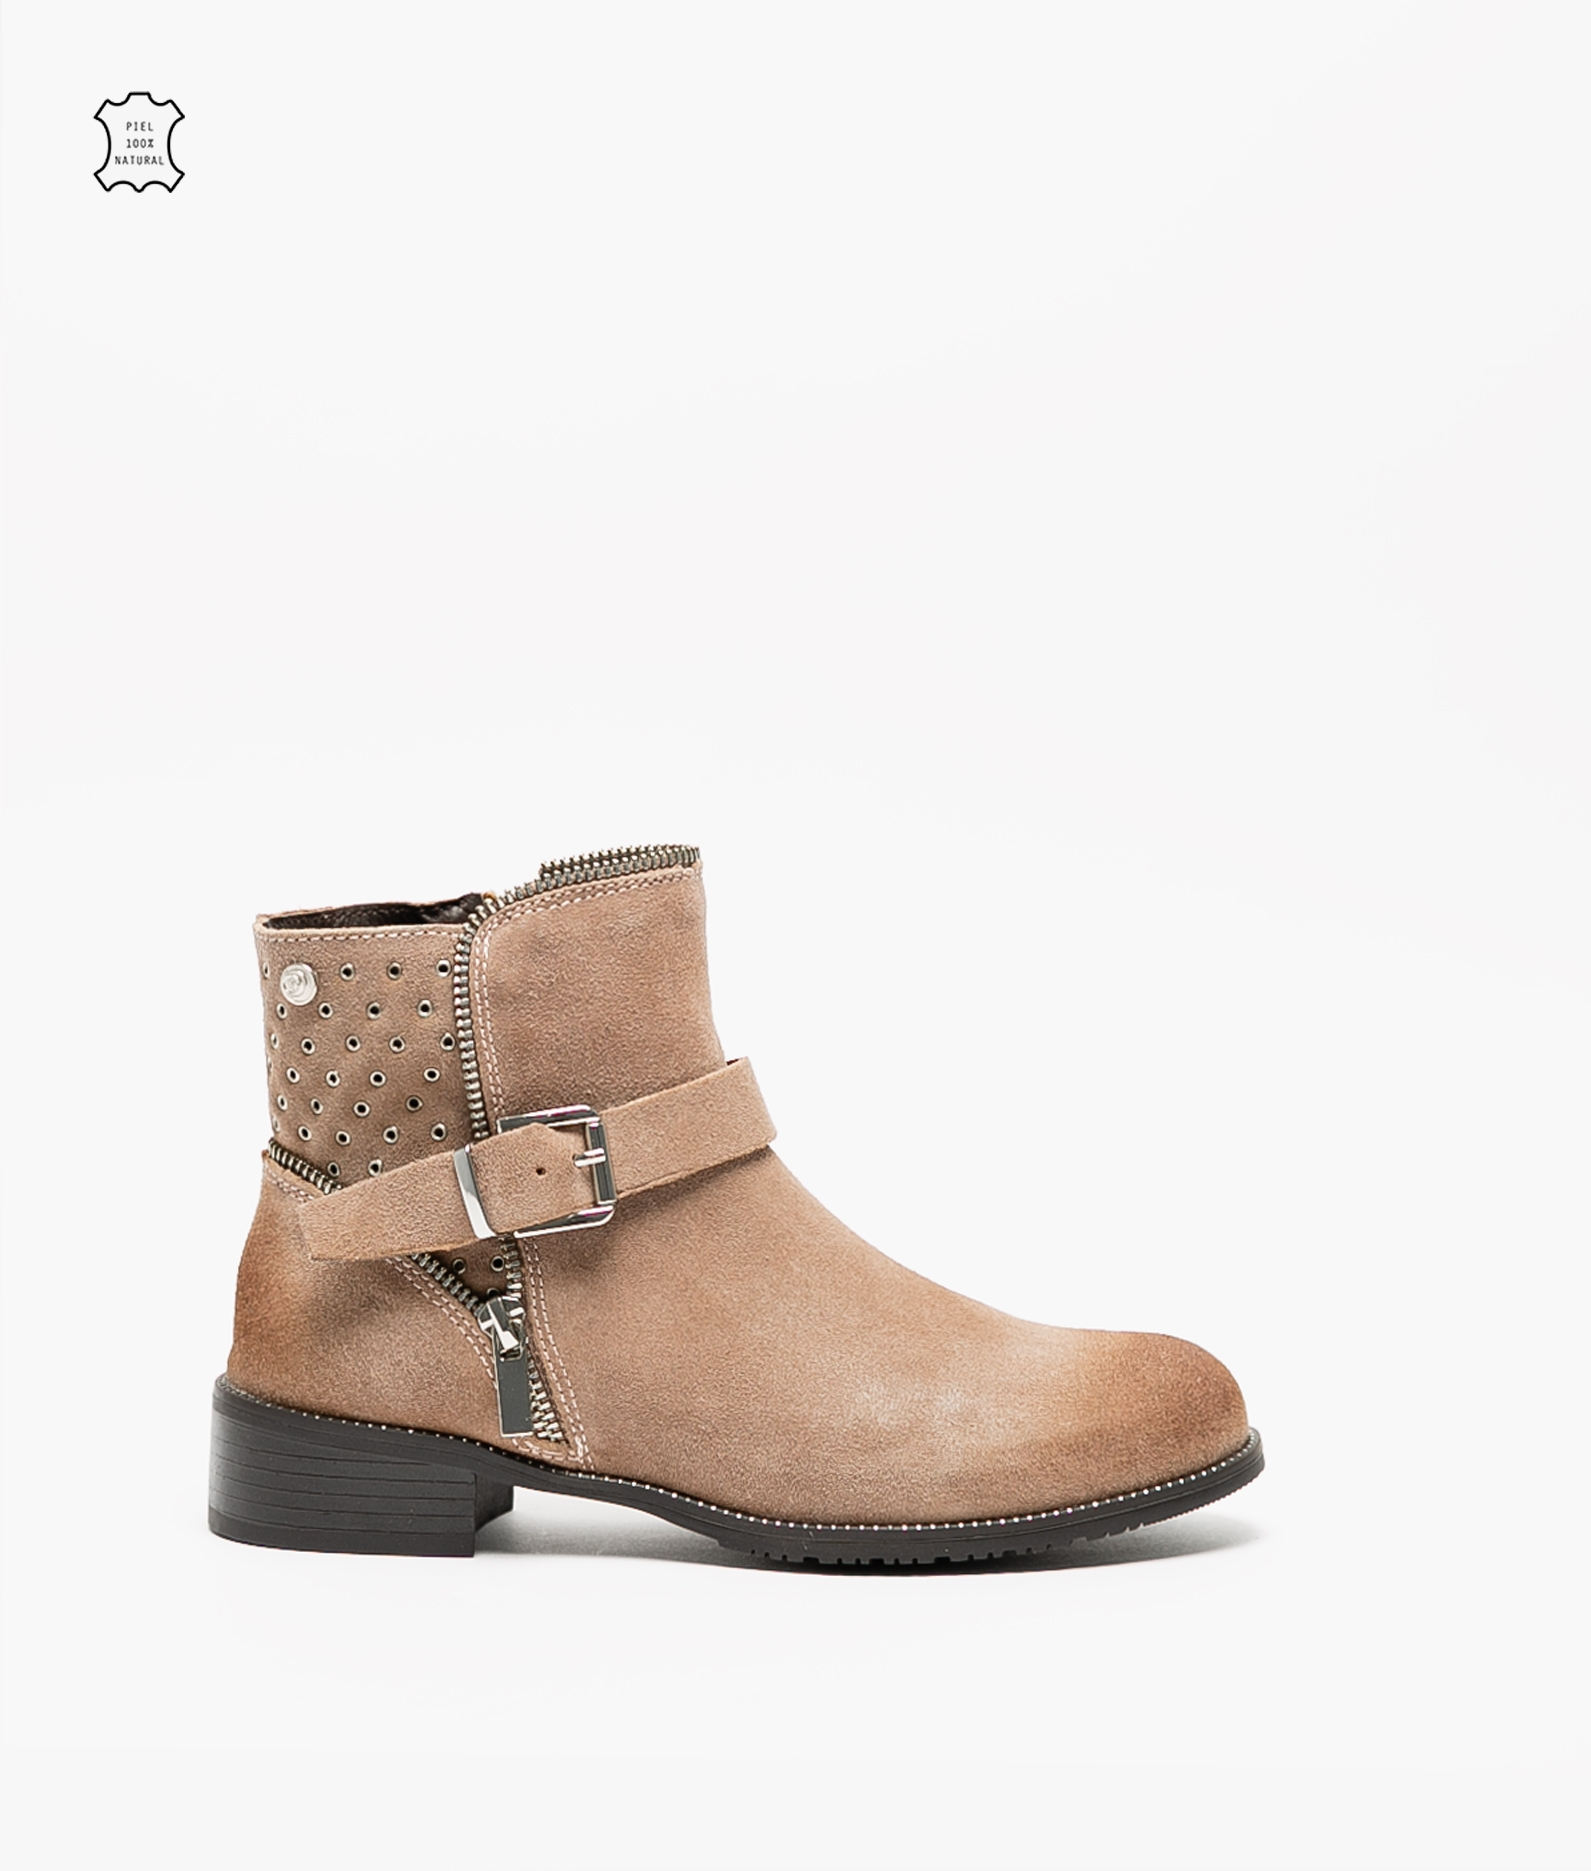 Lulen Low Boot - Taupe